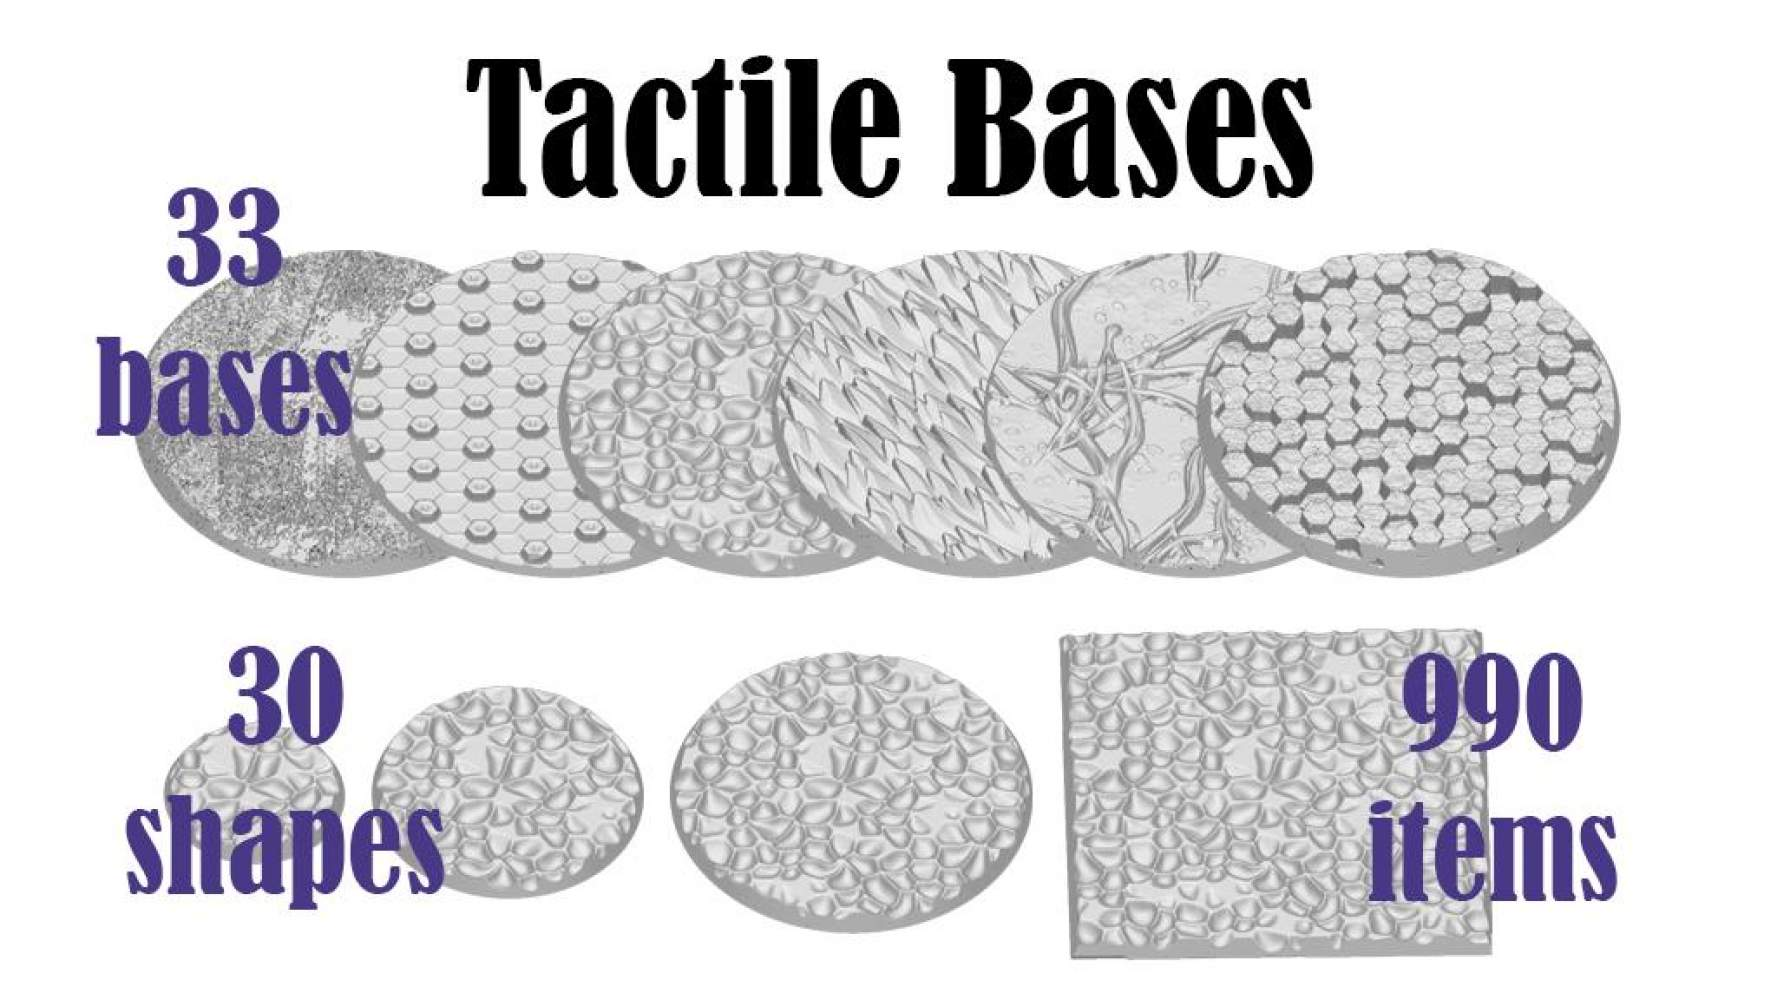 990 Bases For Personal Use - Early bird's Cover